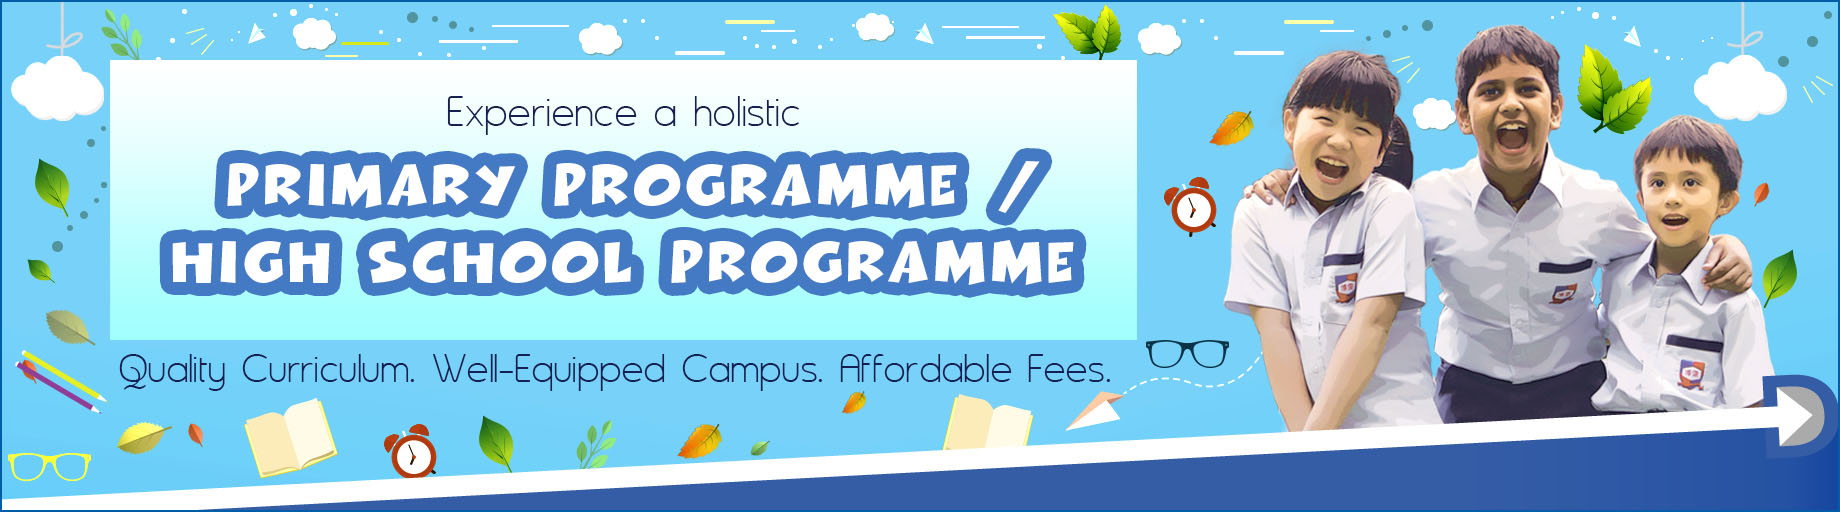 Experience a holistic Primary ProgrammeProgramme